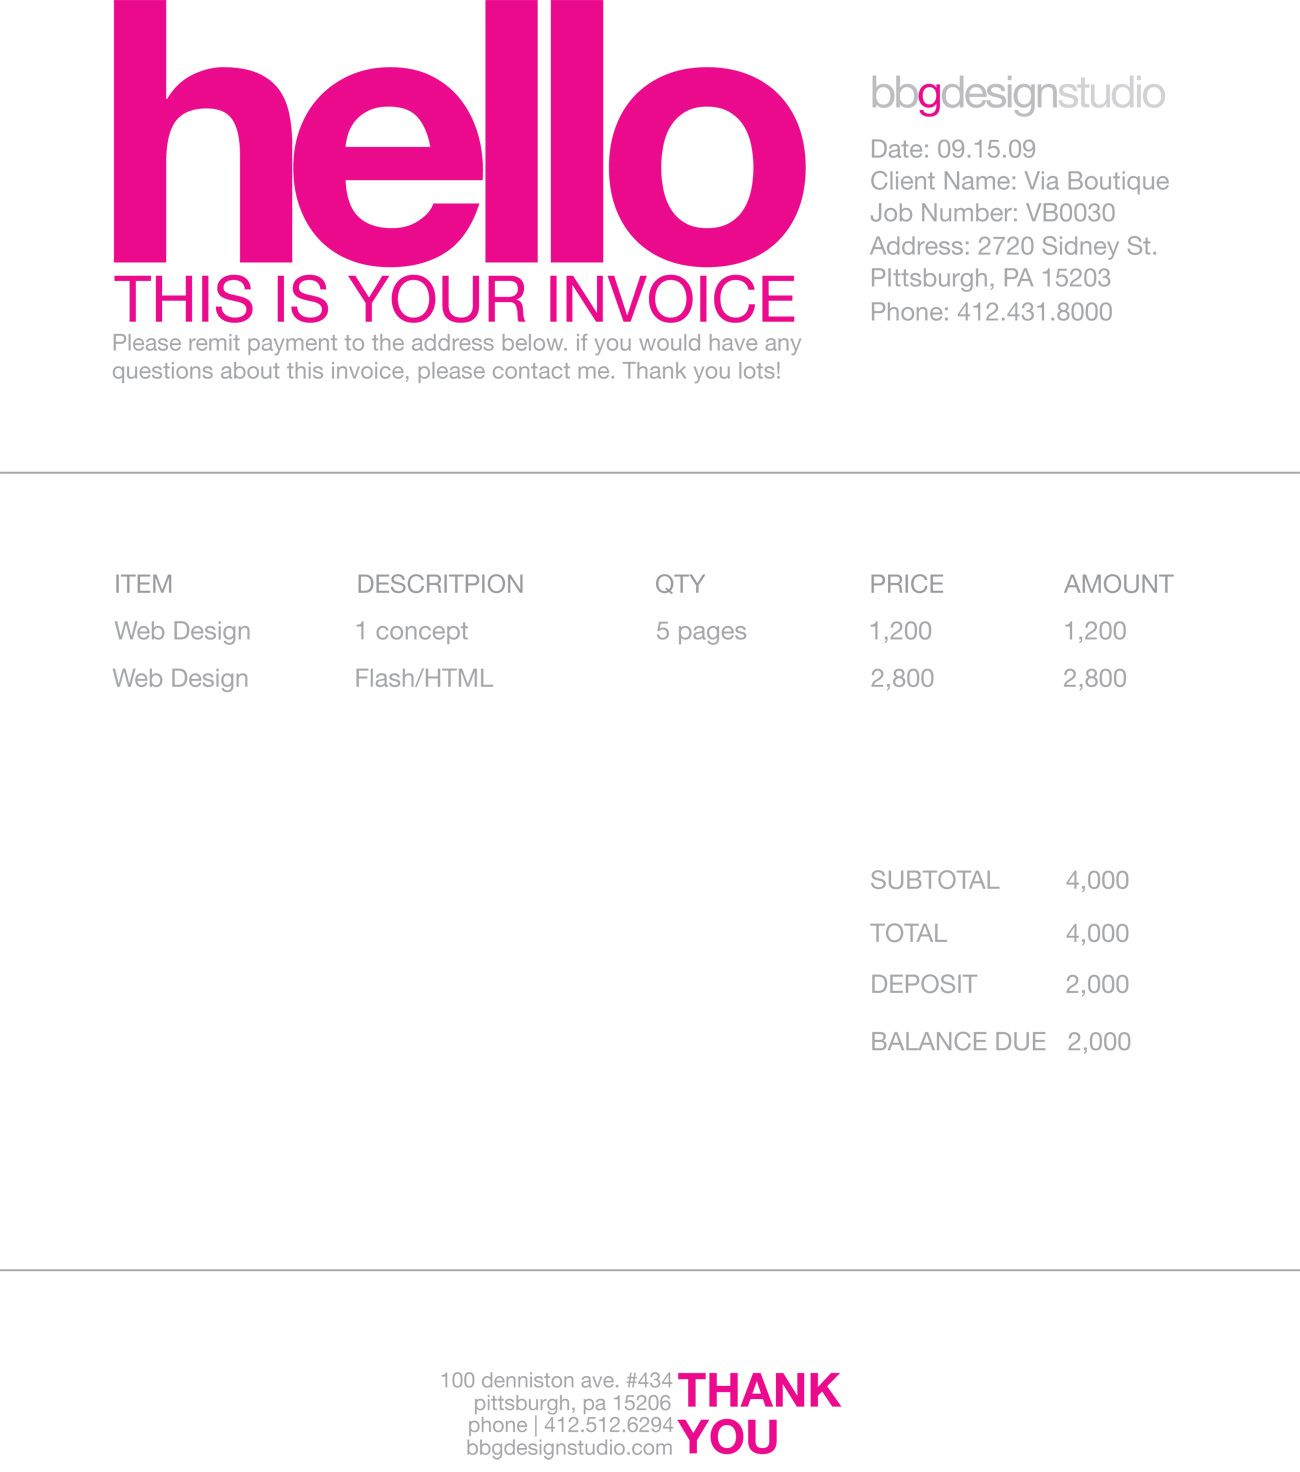 Coolmathgamesus  Surprising  Images About Invoice Design On Pinterest With Exquisite Proforma Invoice Word Format Besides Invoice To Go Plus Furthermore Blank Invoice Format With Astonishing Tax Invoice Samples Also Sample Of Invoice Template In Addition Format Of Invoice In Word And Invoice Dashboard As Well As Paying By Invoice Additionally Invoice Example Doc From Pinterestcom With Coolmathgamesus  Exquisite  Images About Invoice Design On Pinterest With Astonishing Proforma Invoice Word Format Besides Invoice To Go Plus Furthermore Blank Invoice Format And Surprising Tax Invoice Samples Also Sample Of Invoice Template In Addition Format Of Invoice In Word From Pinterestcom